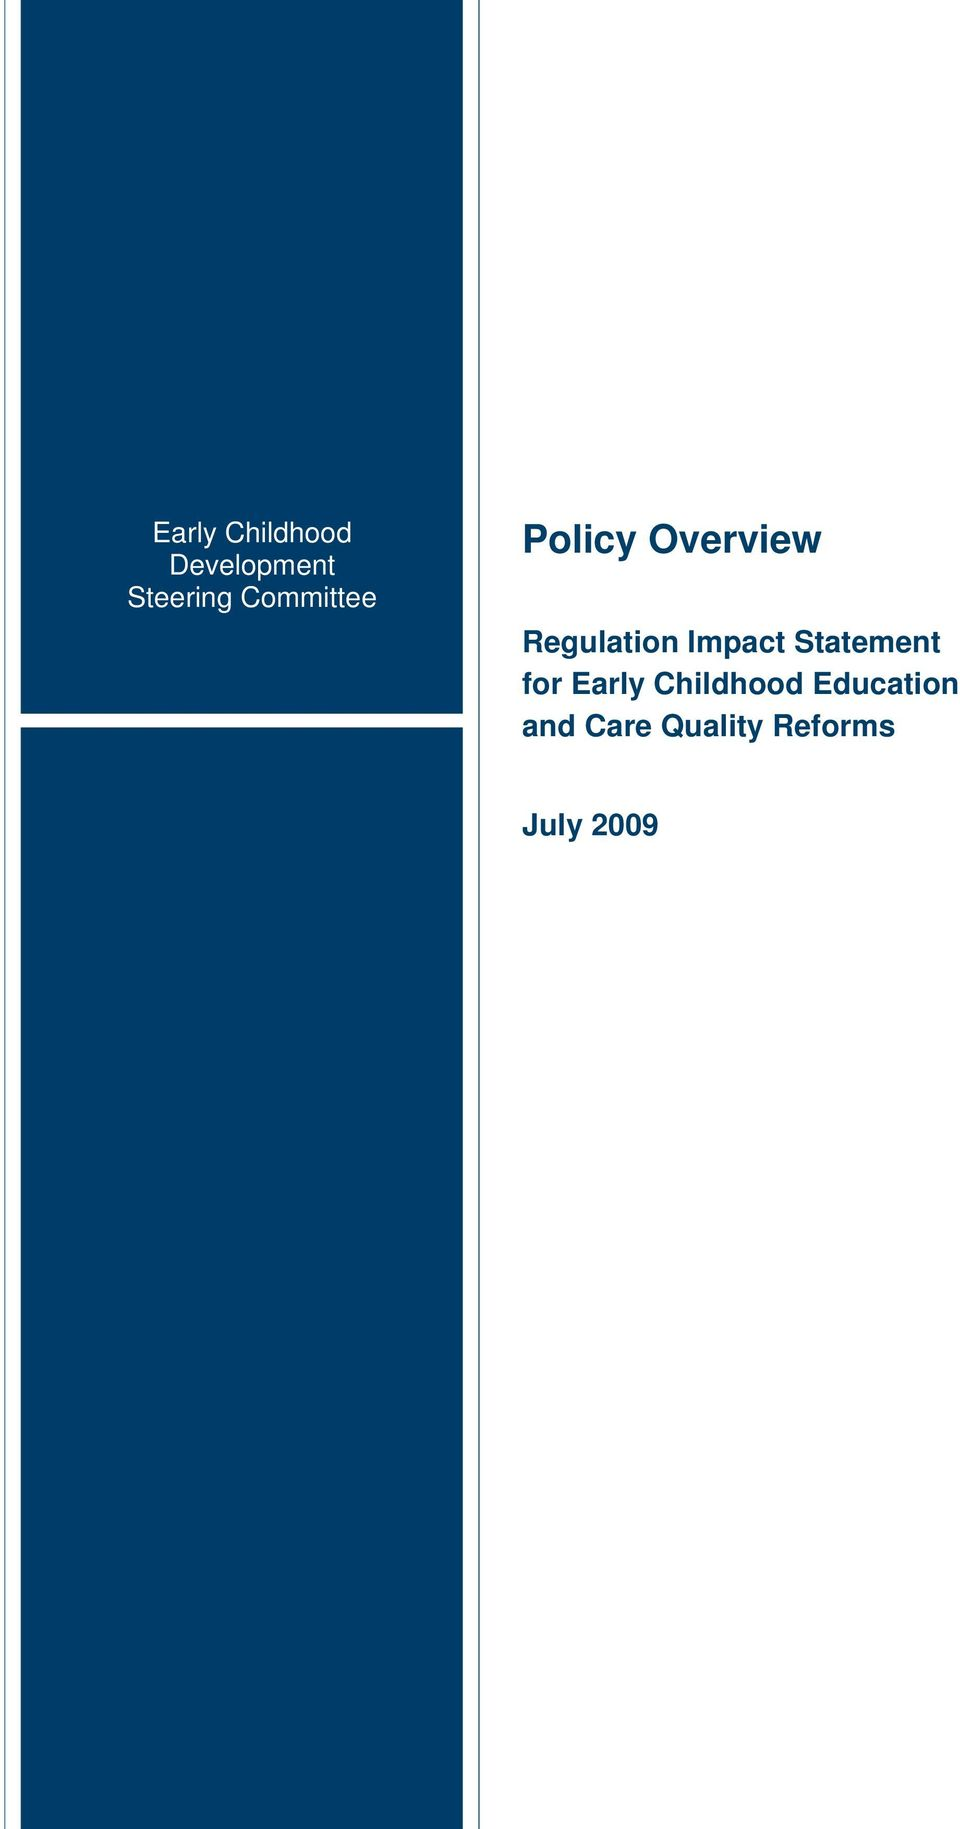 Regulation Impact Statement for Early